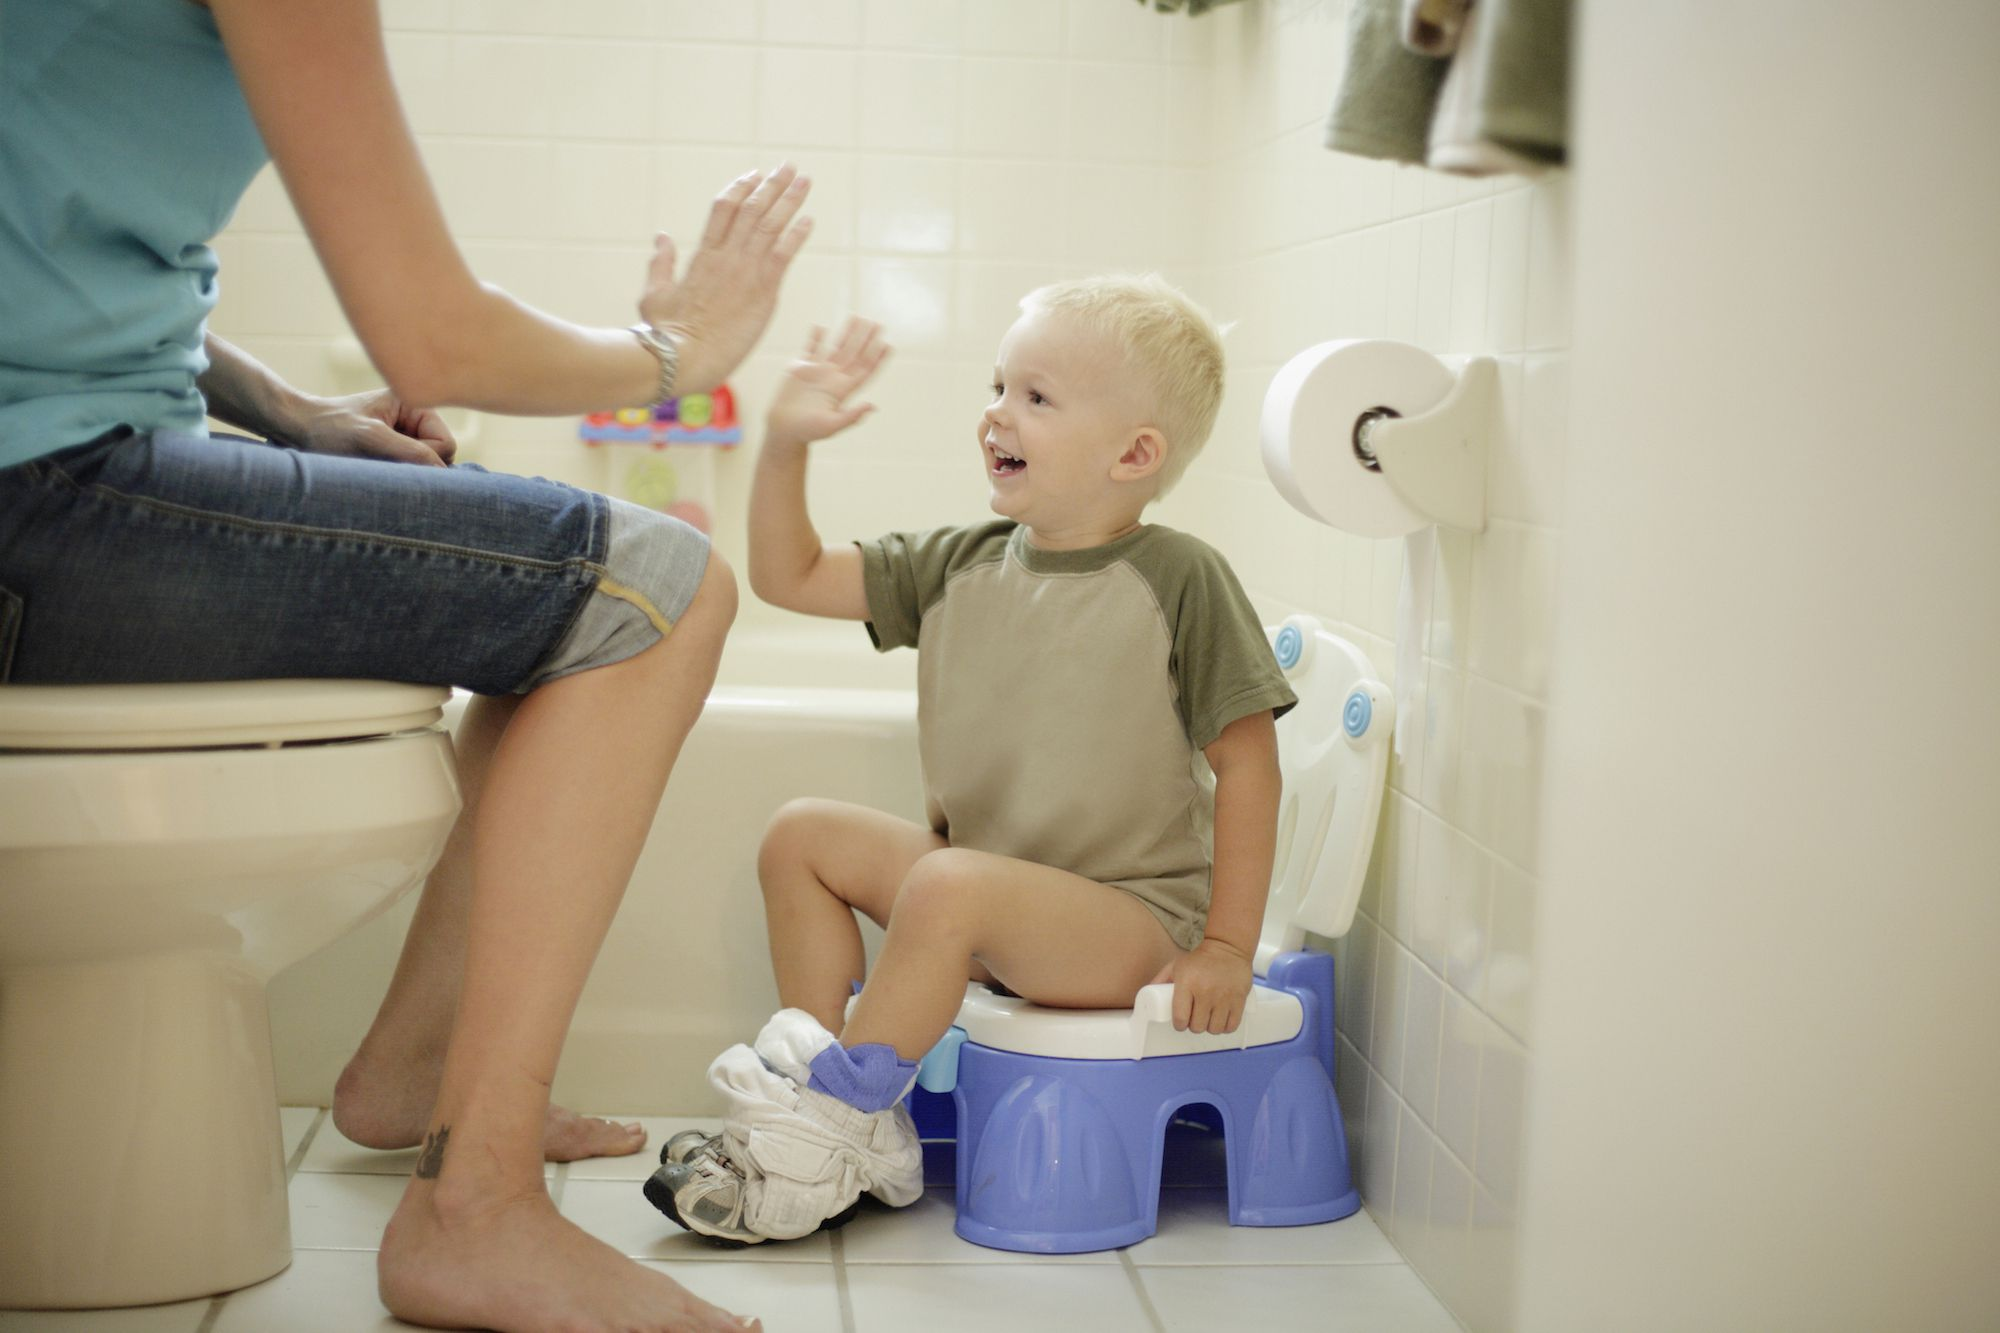 Which Words Should Parents Use During Potty Training